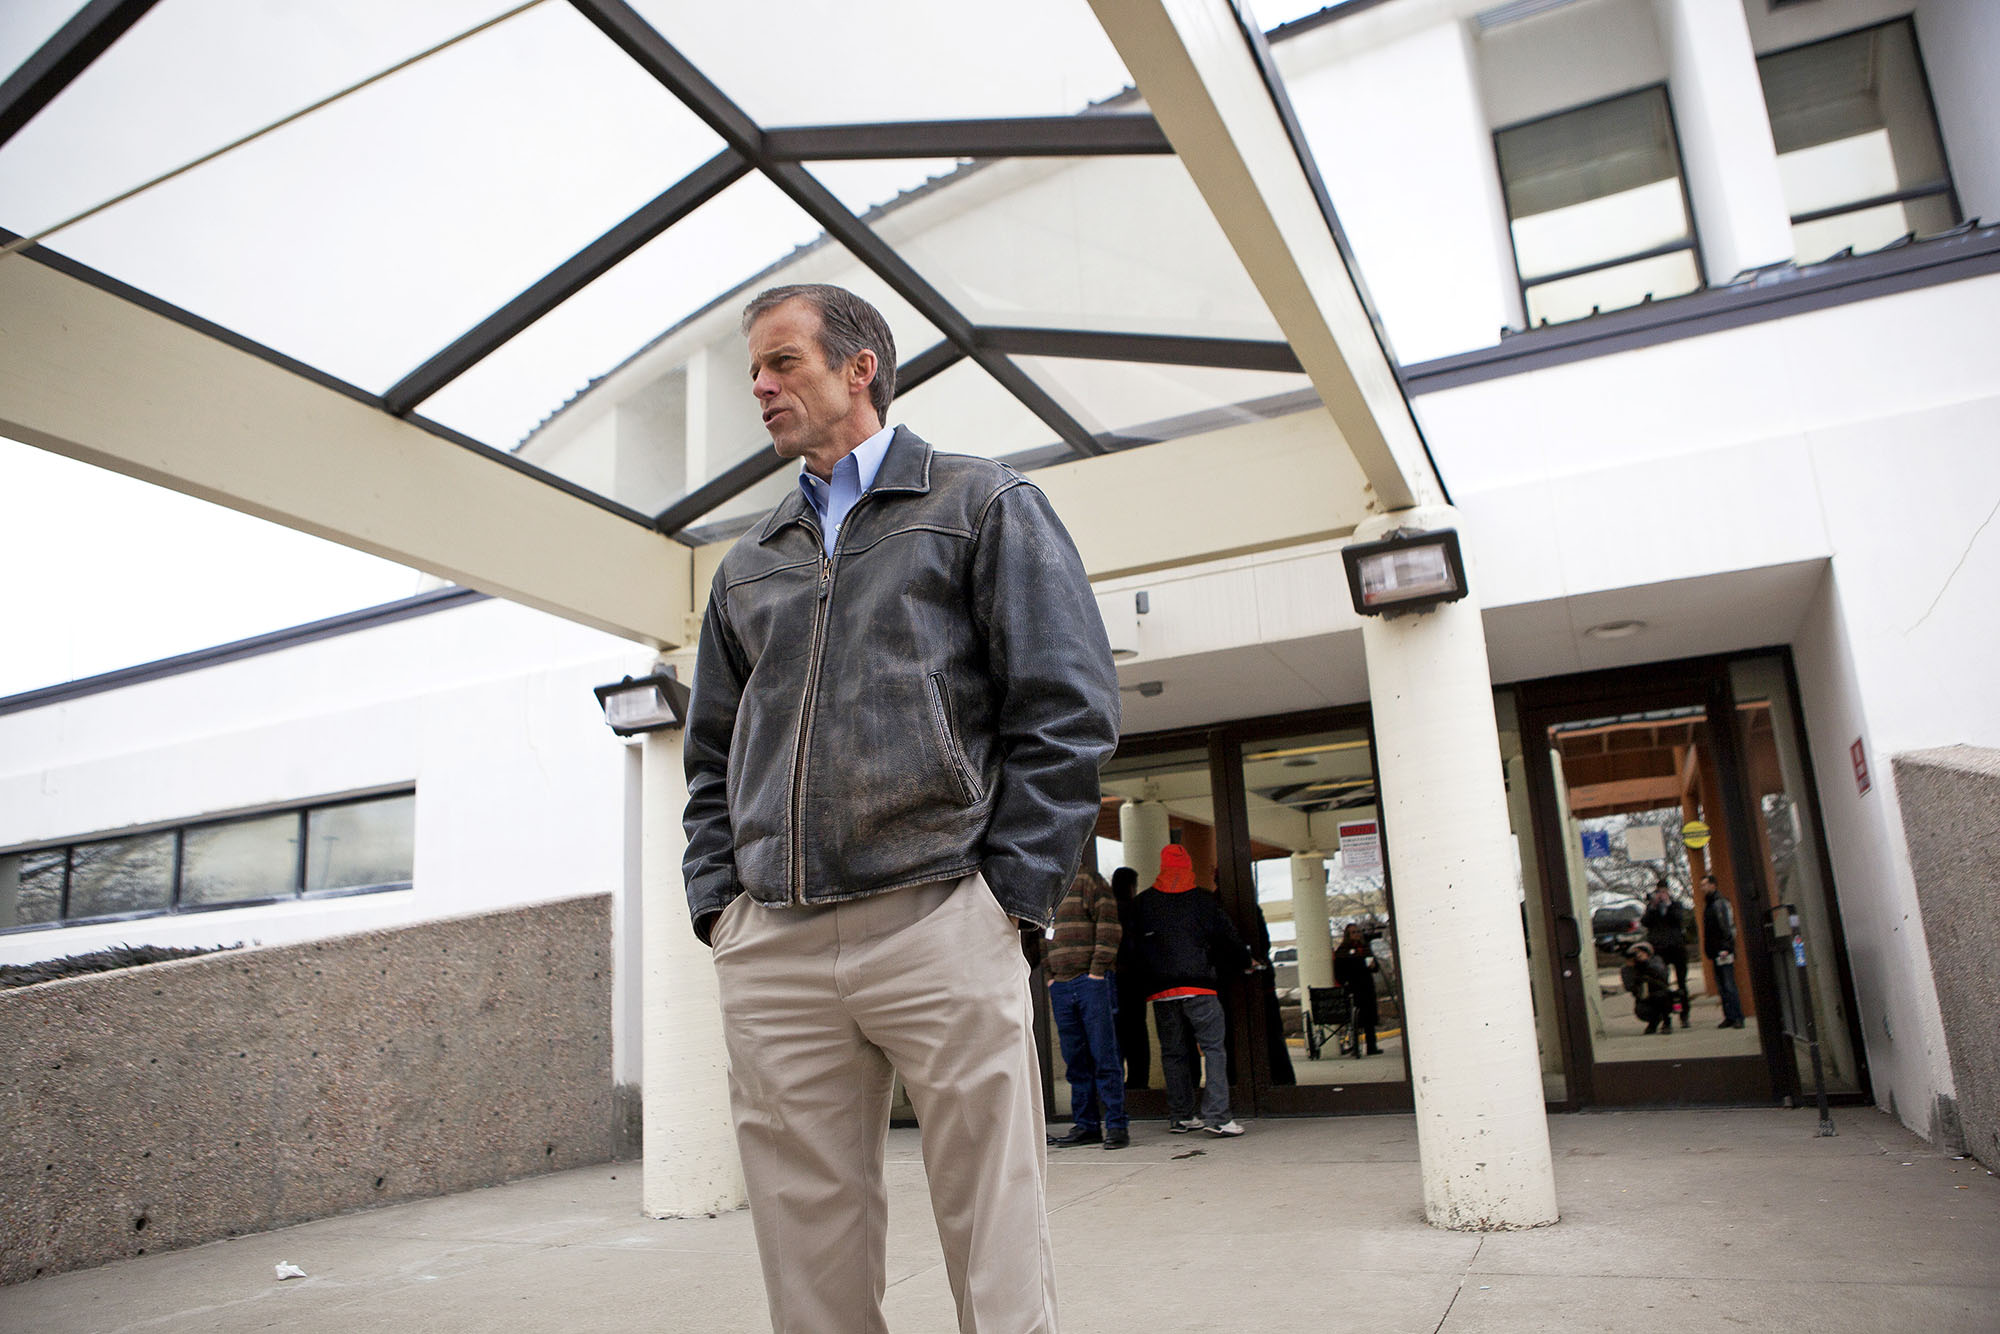 In this Feb. 12, 2016 photo, Sen. John Thune, R-S.D., stands outside of the Rosebud Indian Health Service hospital on the Rosebud Indian Reservation in South Dakota before taking a tour of the facility. The Centers for Medicare and Medicaid Services on Tuesday, March 1, 2016, notified the administration of the 35-bed hospital that the facility's Medicare funding will be pulled effective March 16. (Josh Morgan/Rapid City Journal via AP) TV OUT; MANDATORY CREDIT